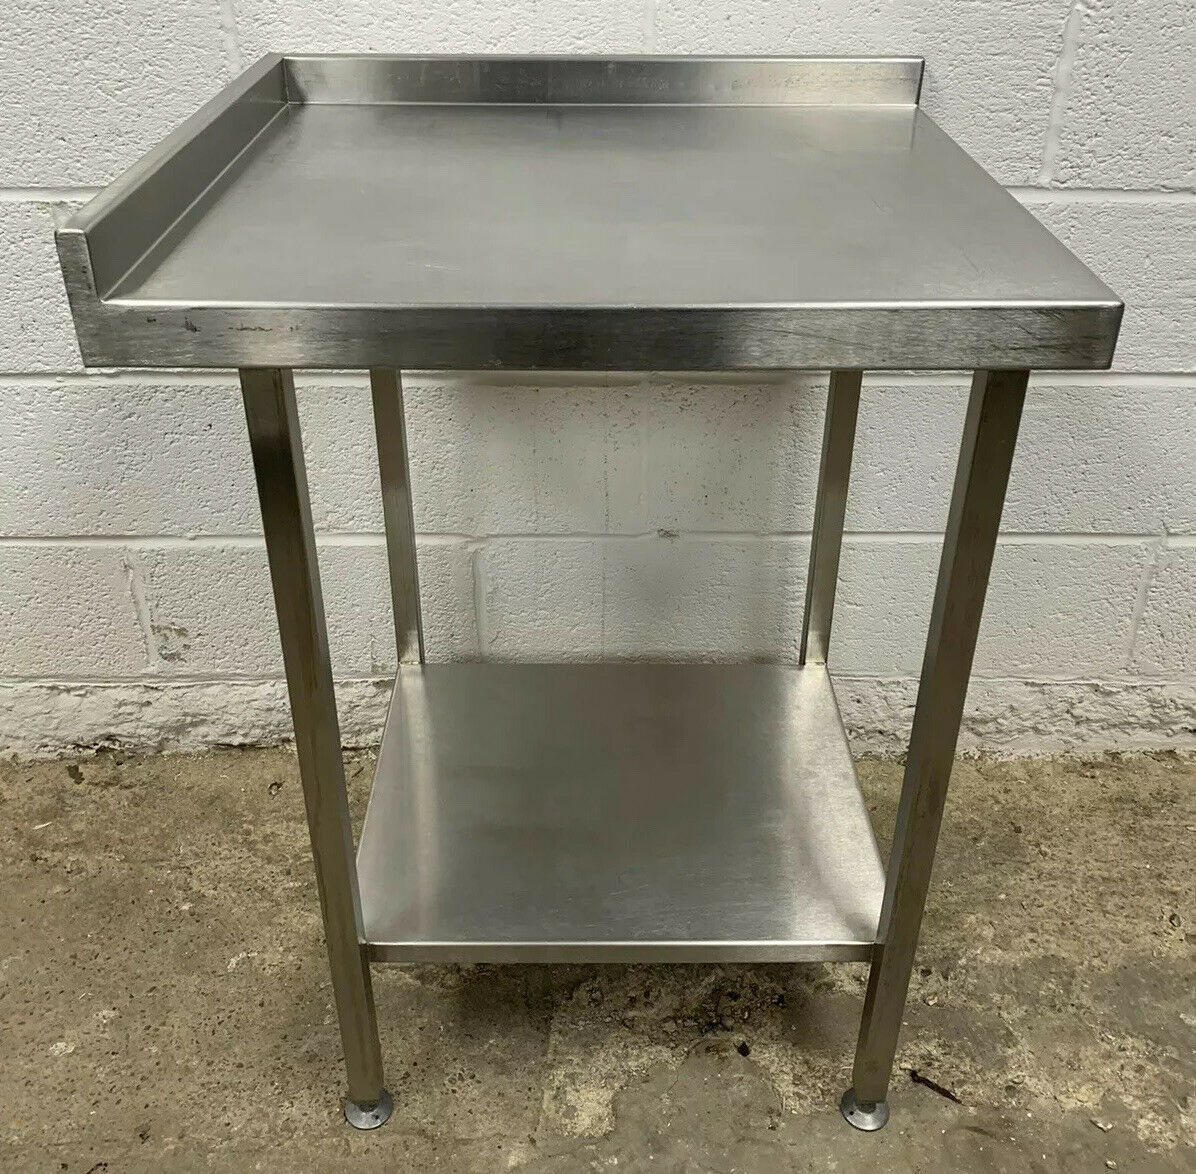 Stainless Steel Prep Table - Image 4 of 4